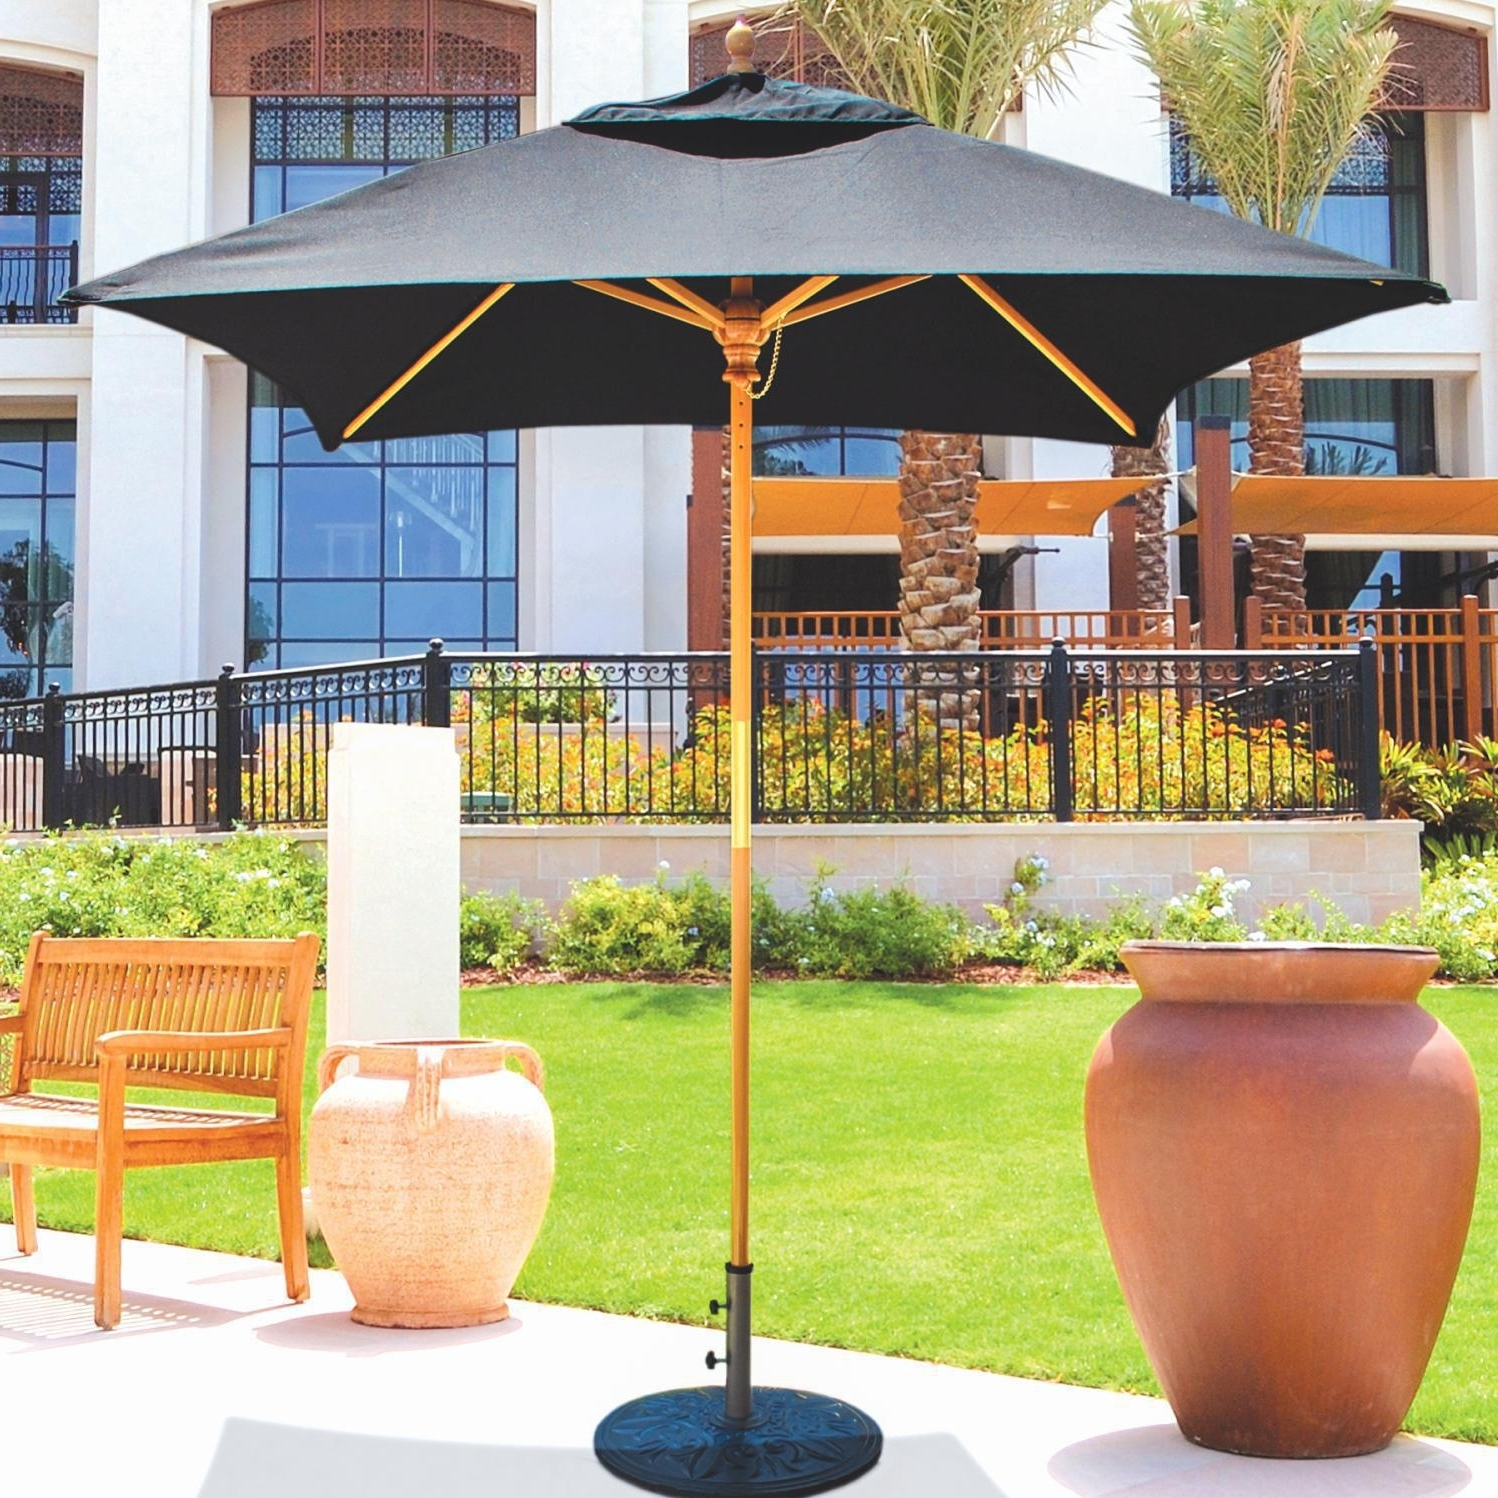 Current 6 Ft Patio Umbrellas Intended For Galtech 6 Ft Wood Square Patio Umbrella With Manual Lift – Light (Gallery 12 of 20)